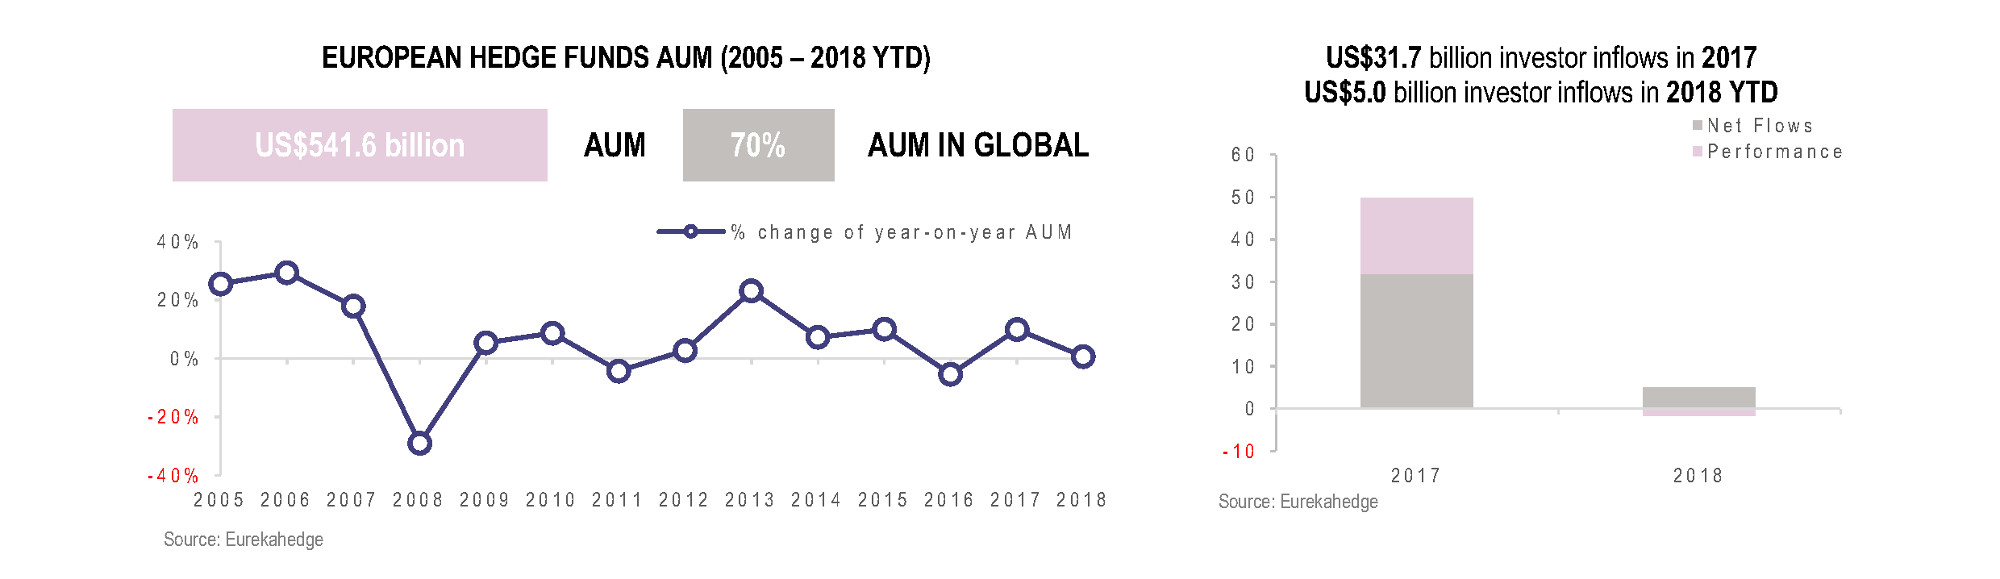 European Hedge Funds Infographic July 2018 - AUM